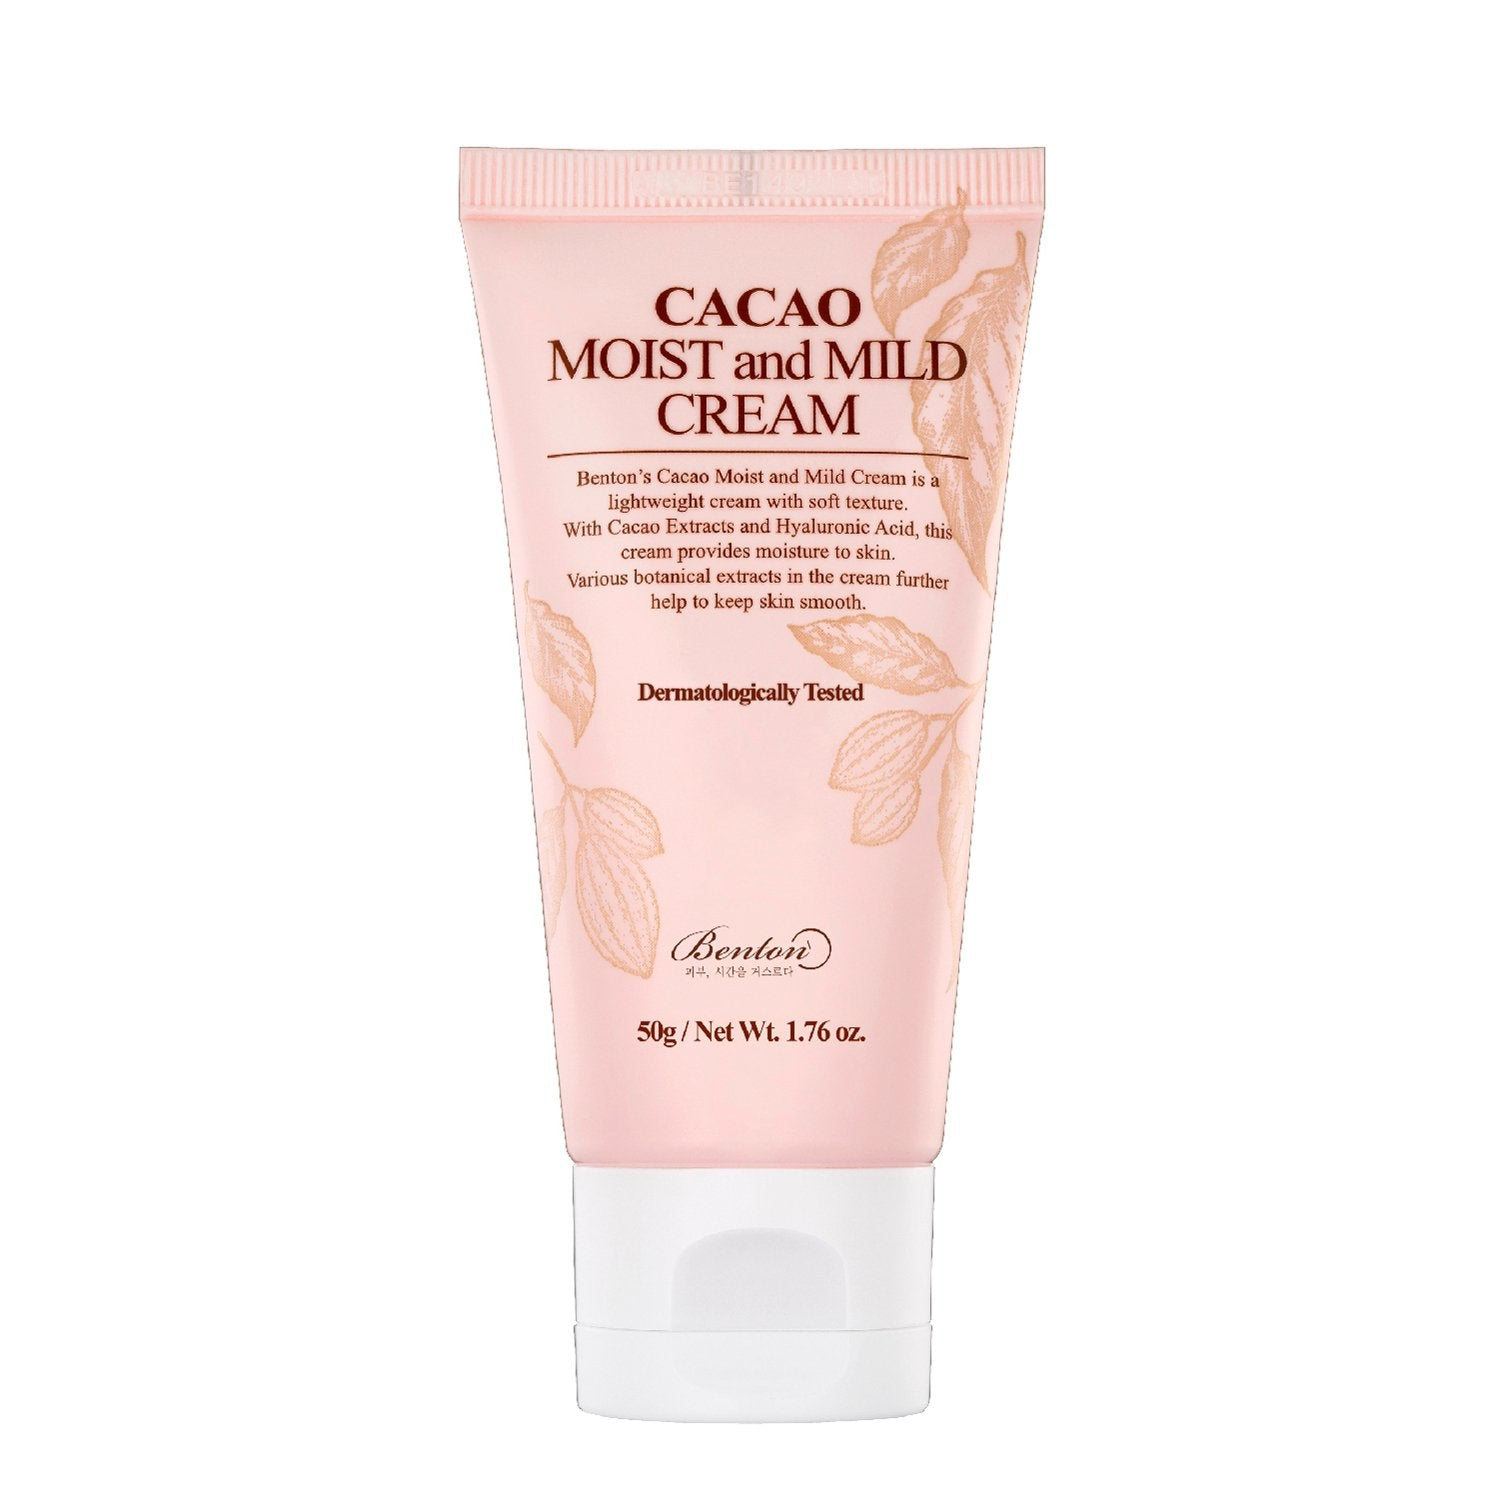 Cacao Moist and Mild Cream (50g) Moisturiser Benton